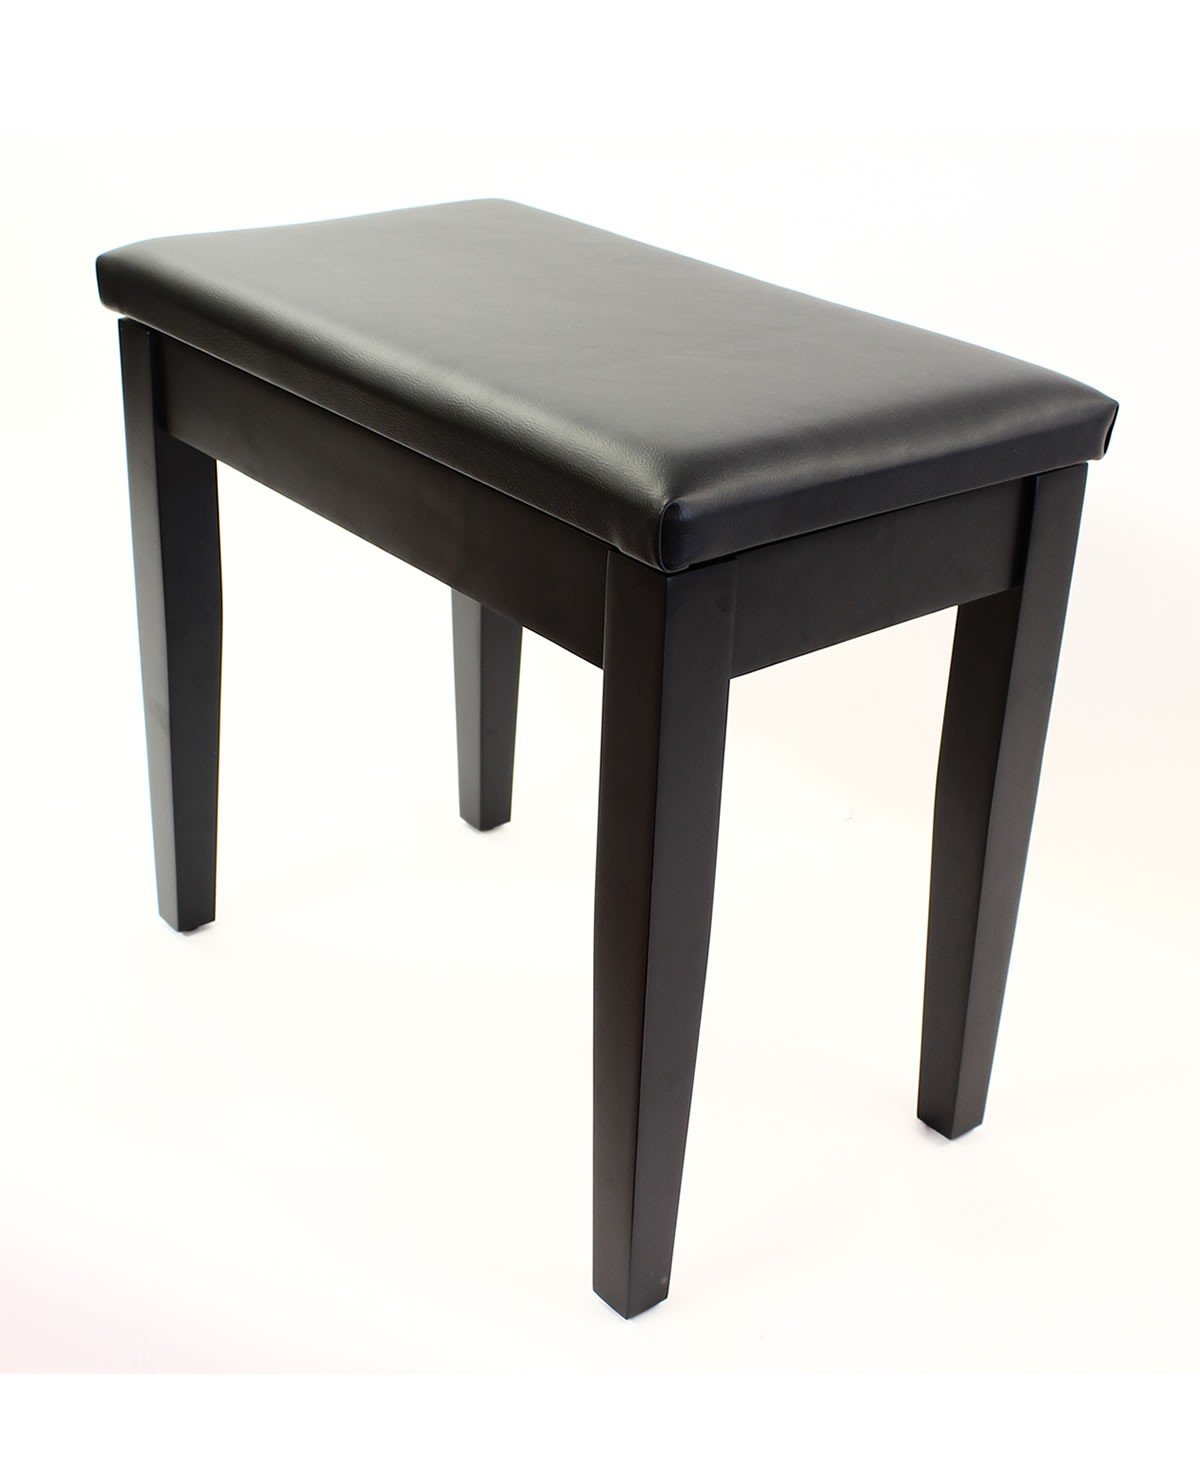 Coda Piano Bench with Padded Seat and Sheet Music Book Storage - Satin Black